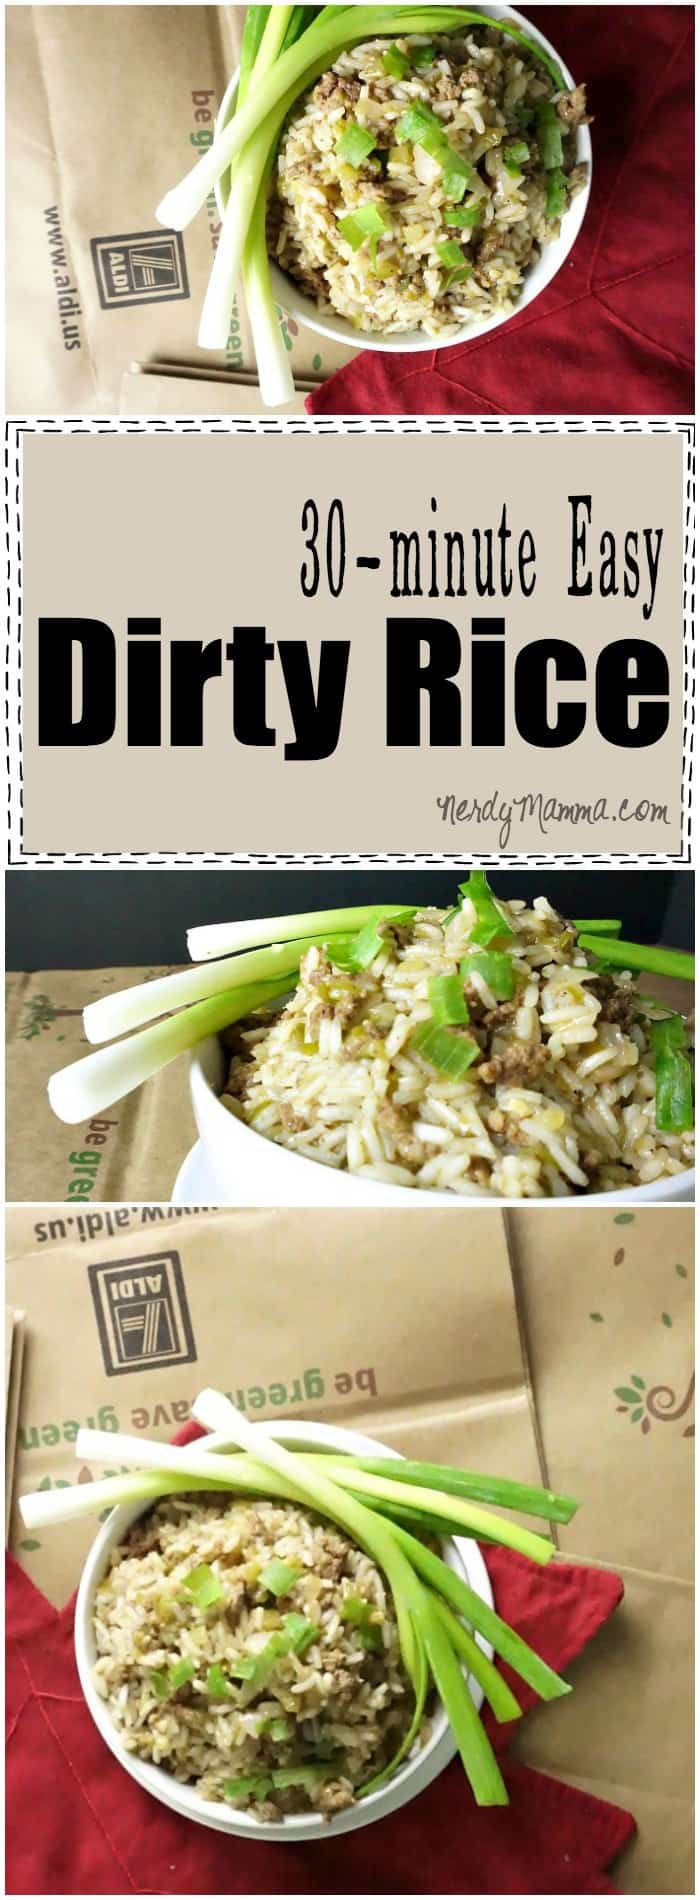 I absolutely love this easy recipe for dirty rice! I had no idea you could make it this fast at home...no need to buy the box anymore! LOL!